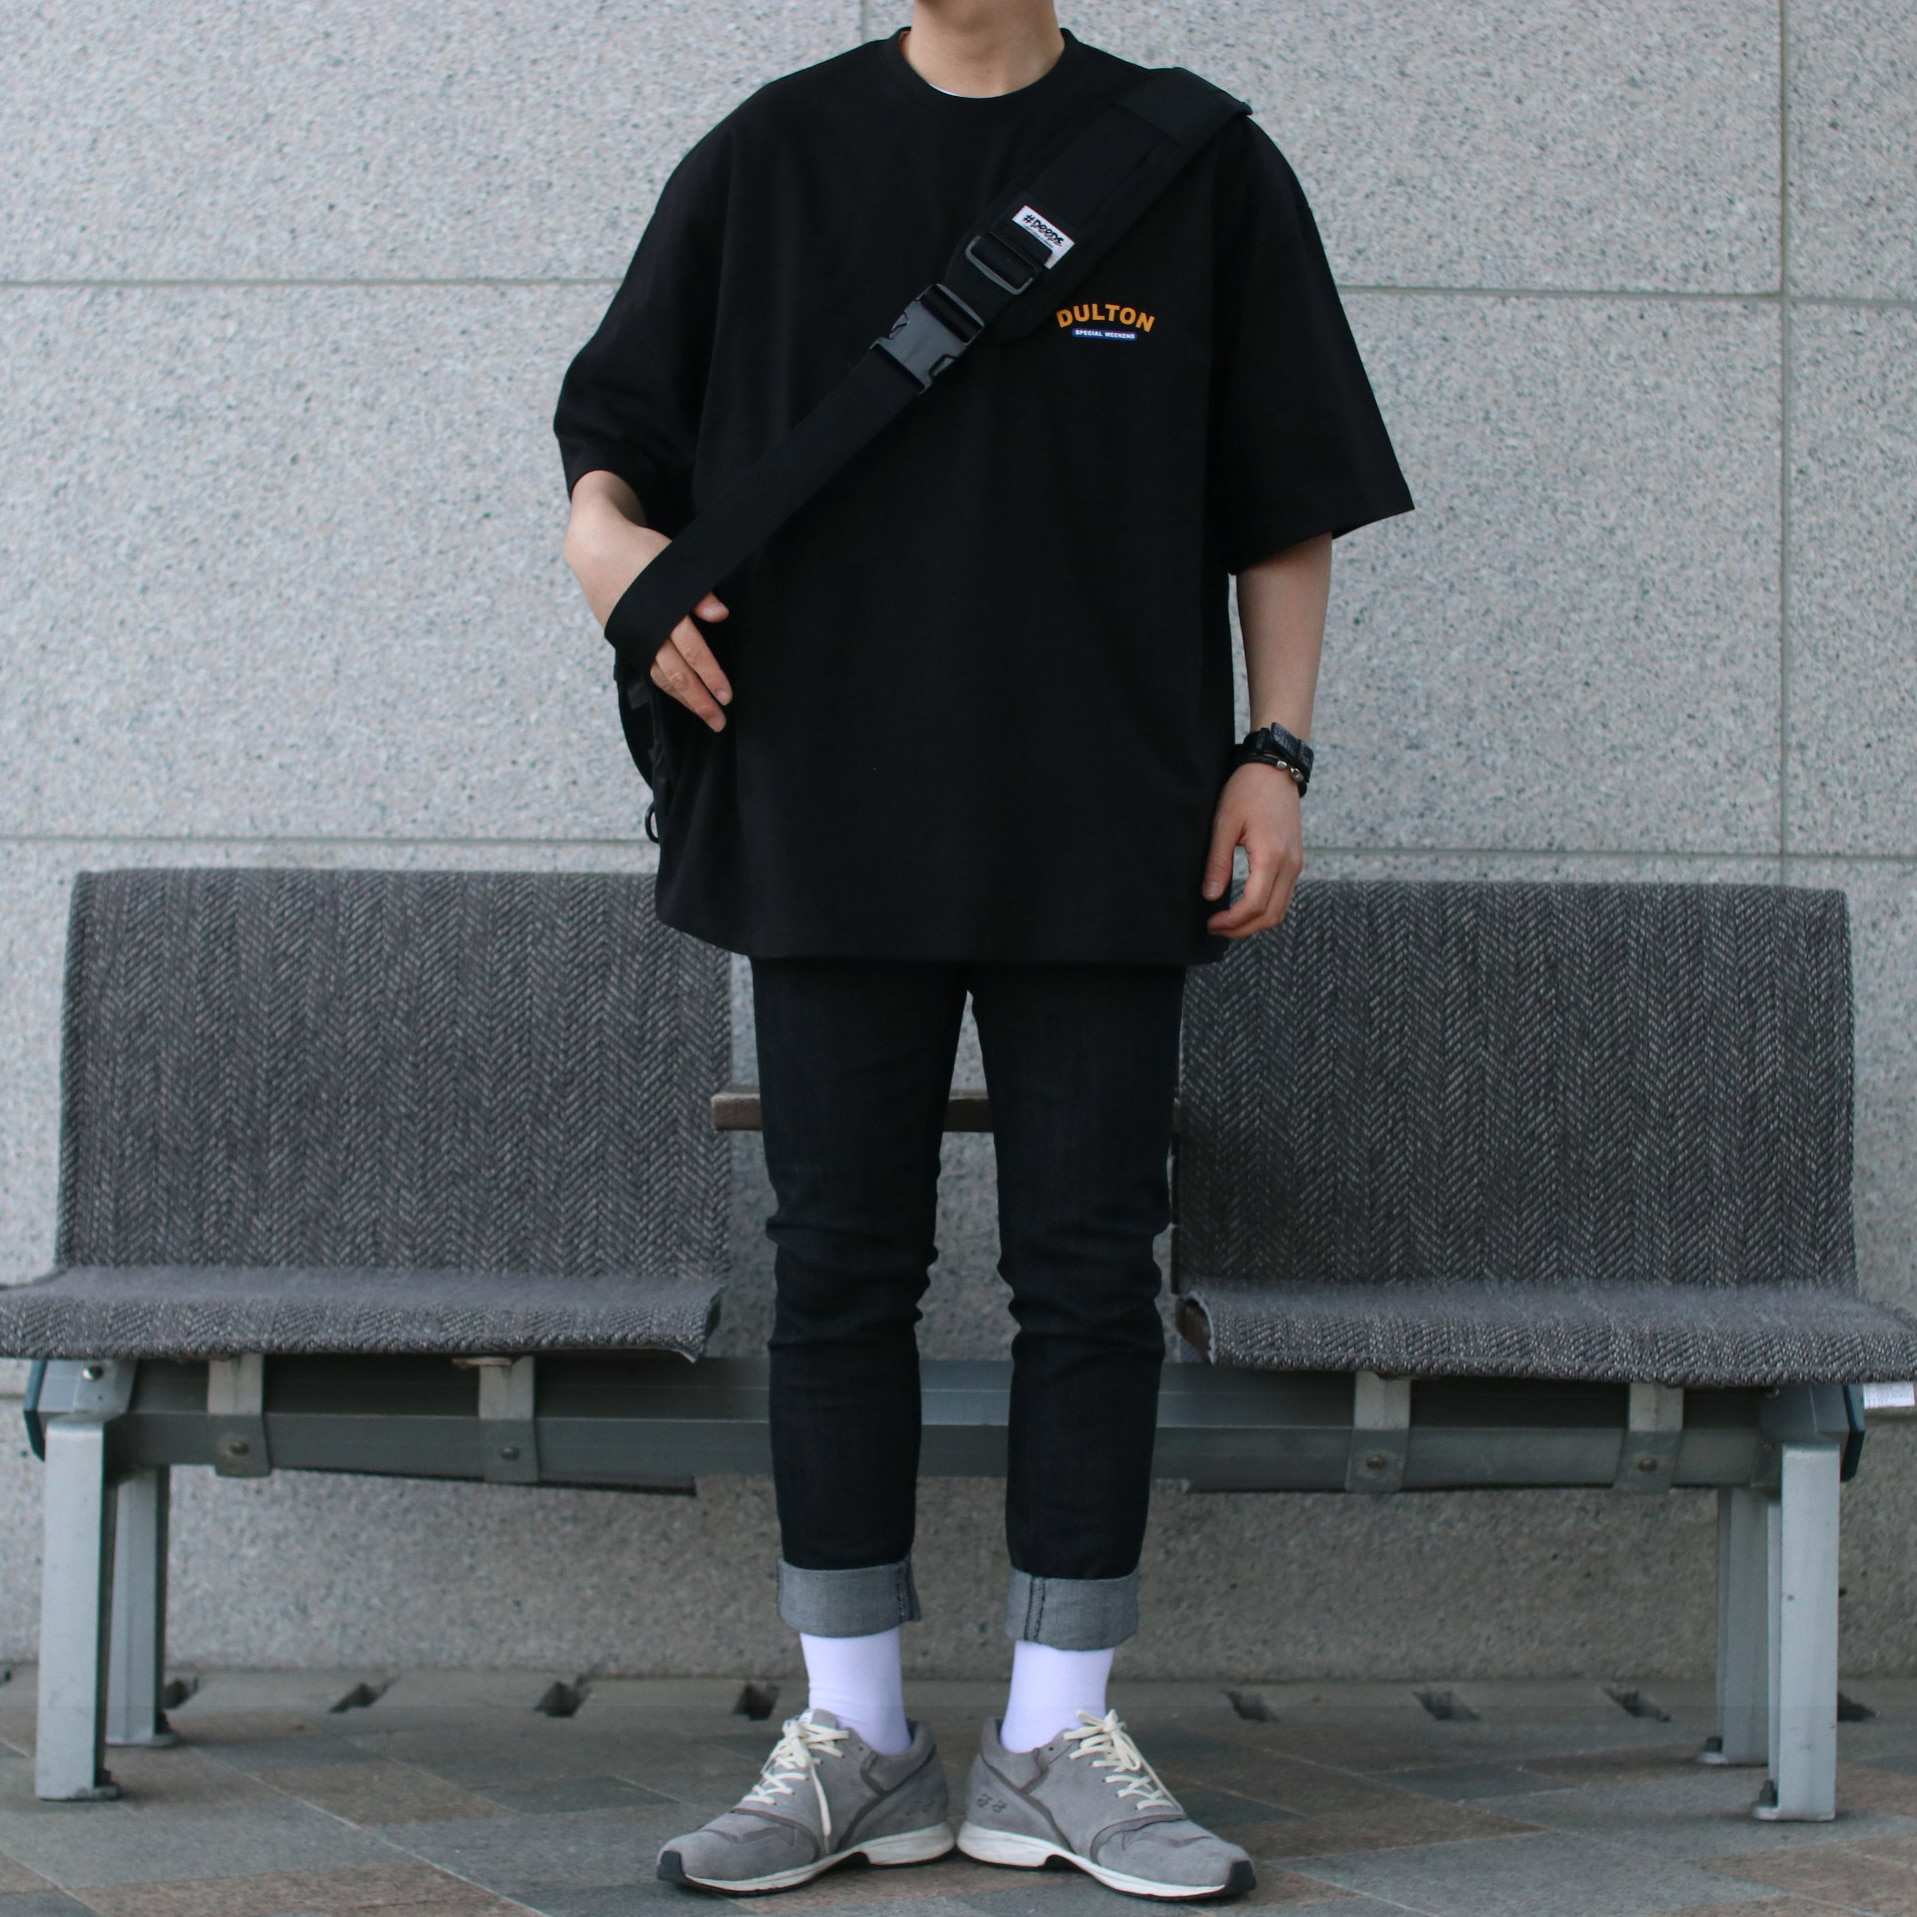 Avant-fit DULTON Black Tee